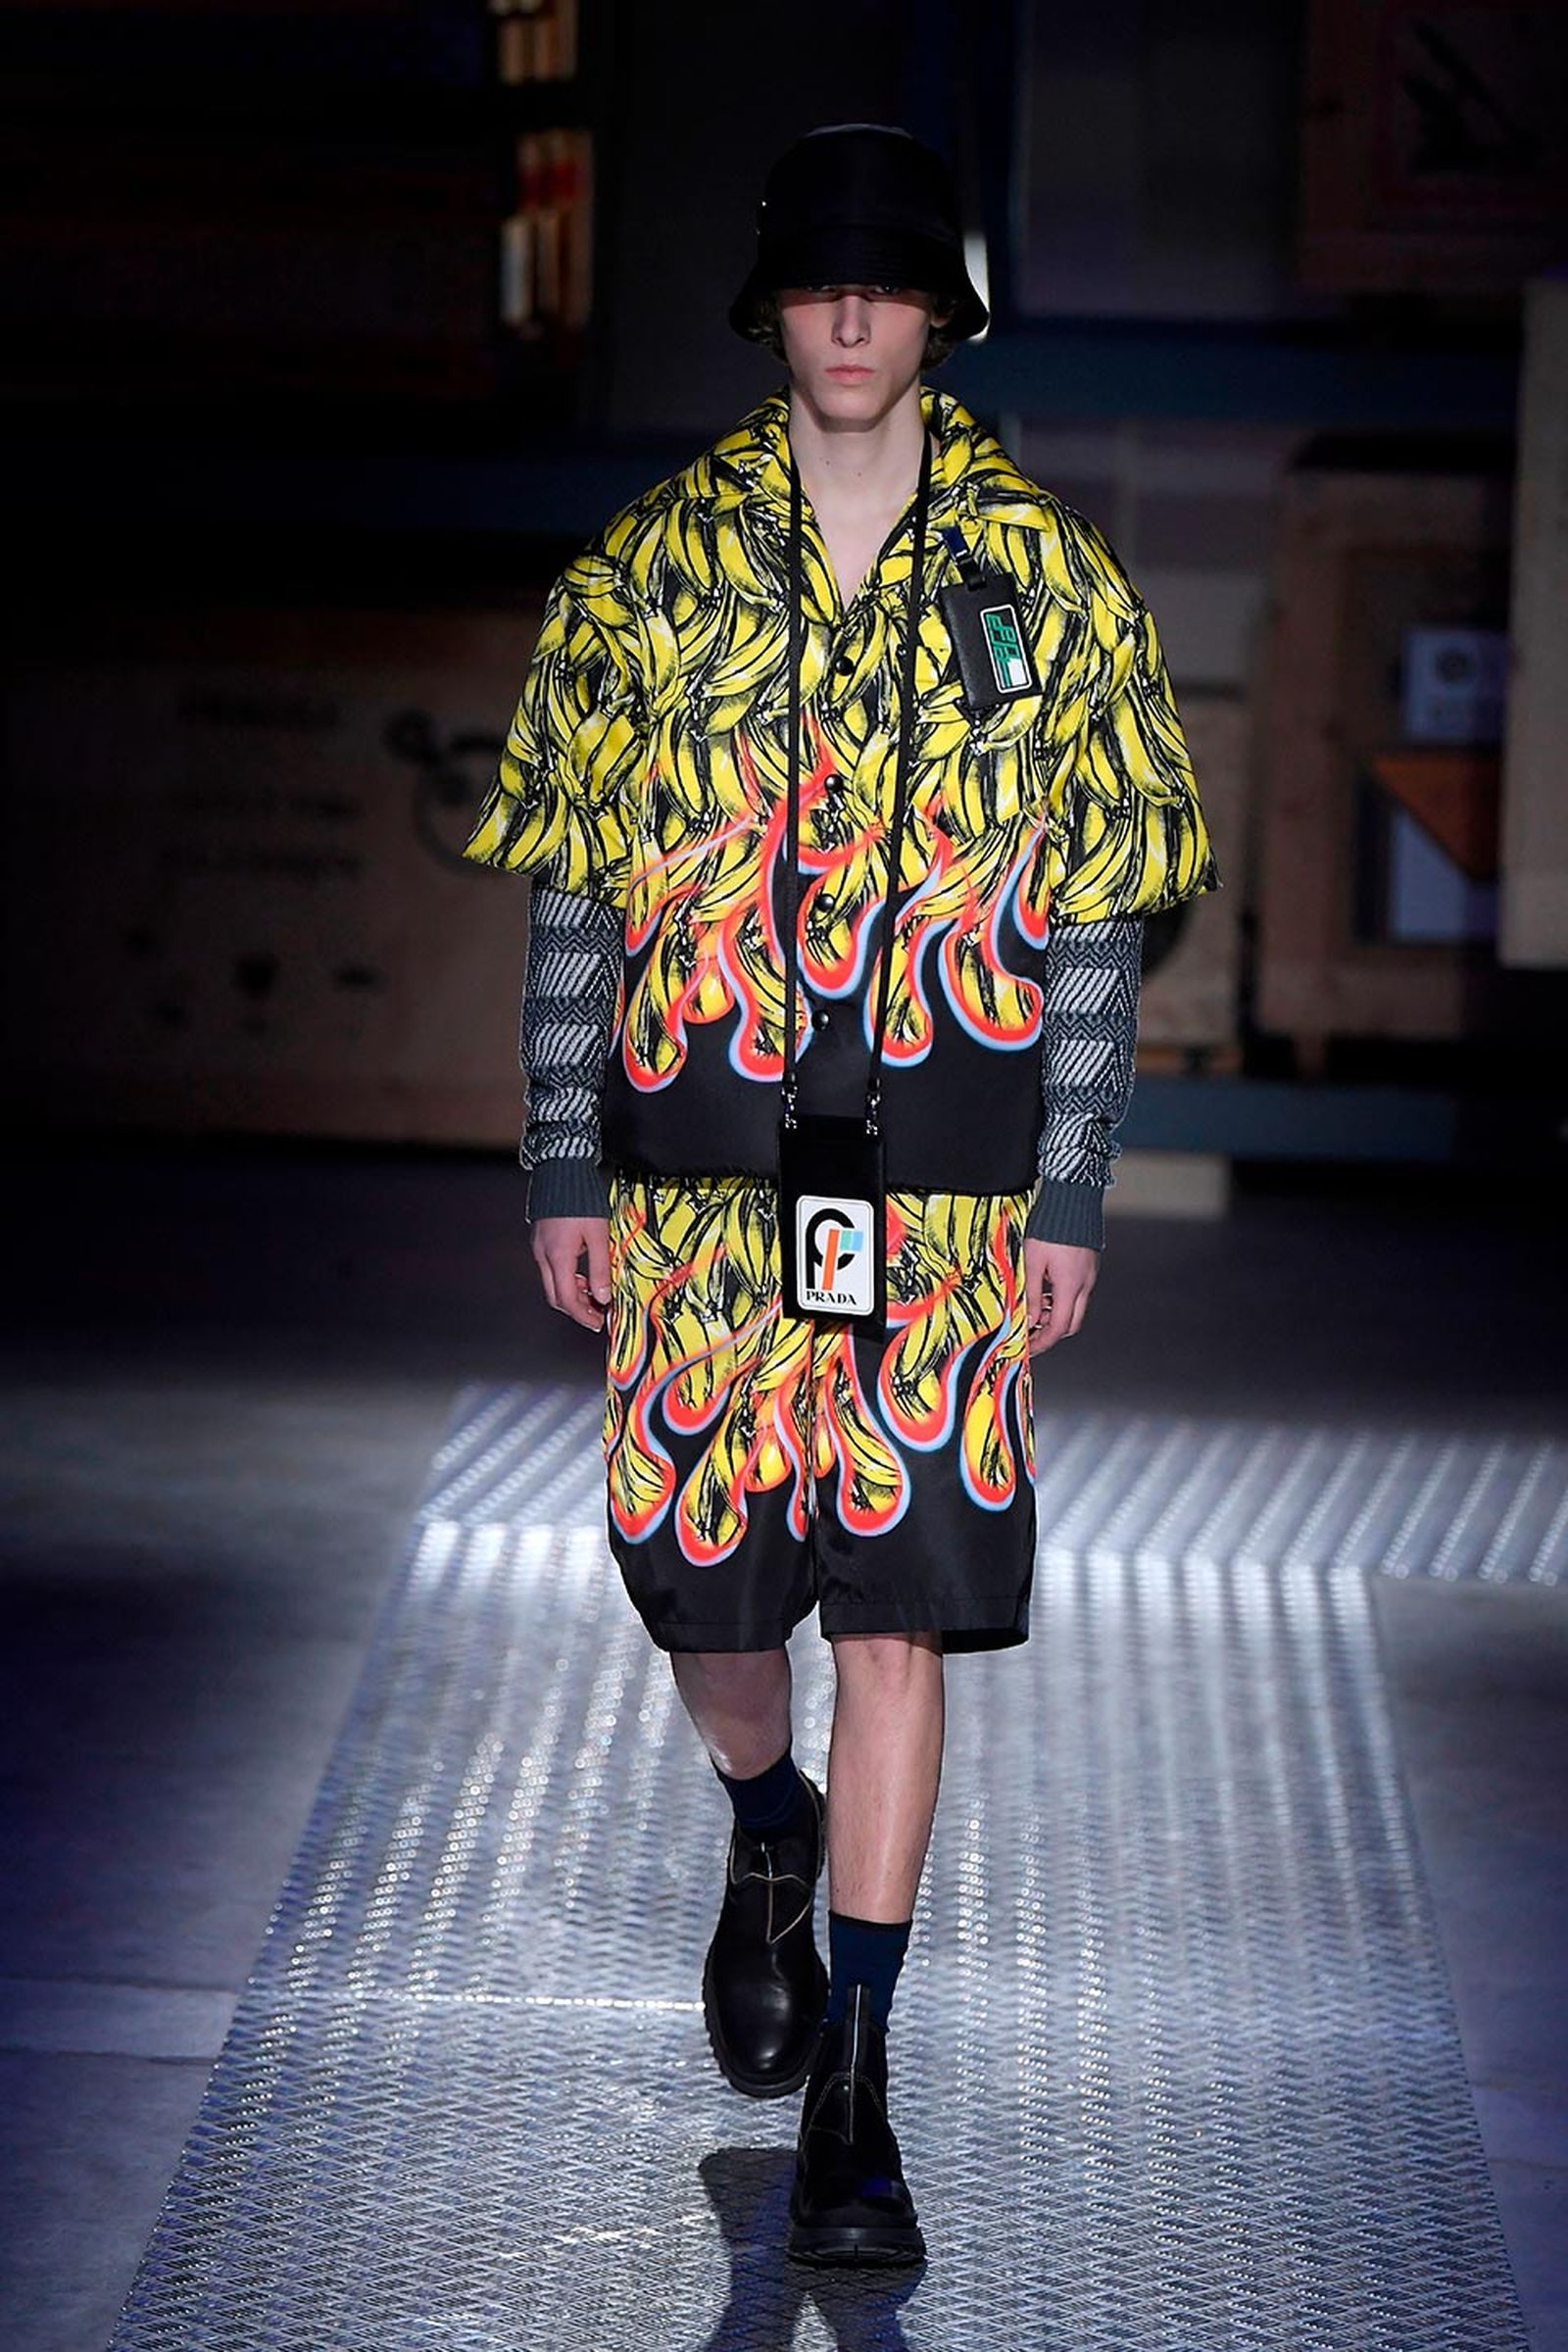 prada milan revival Palm Angels marni milan fashion week